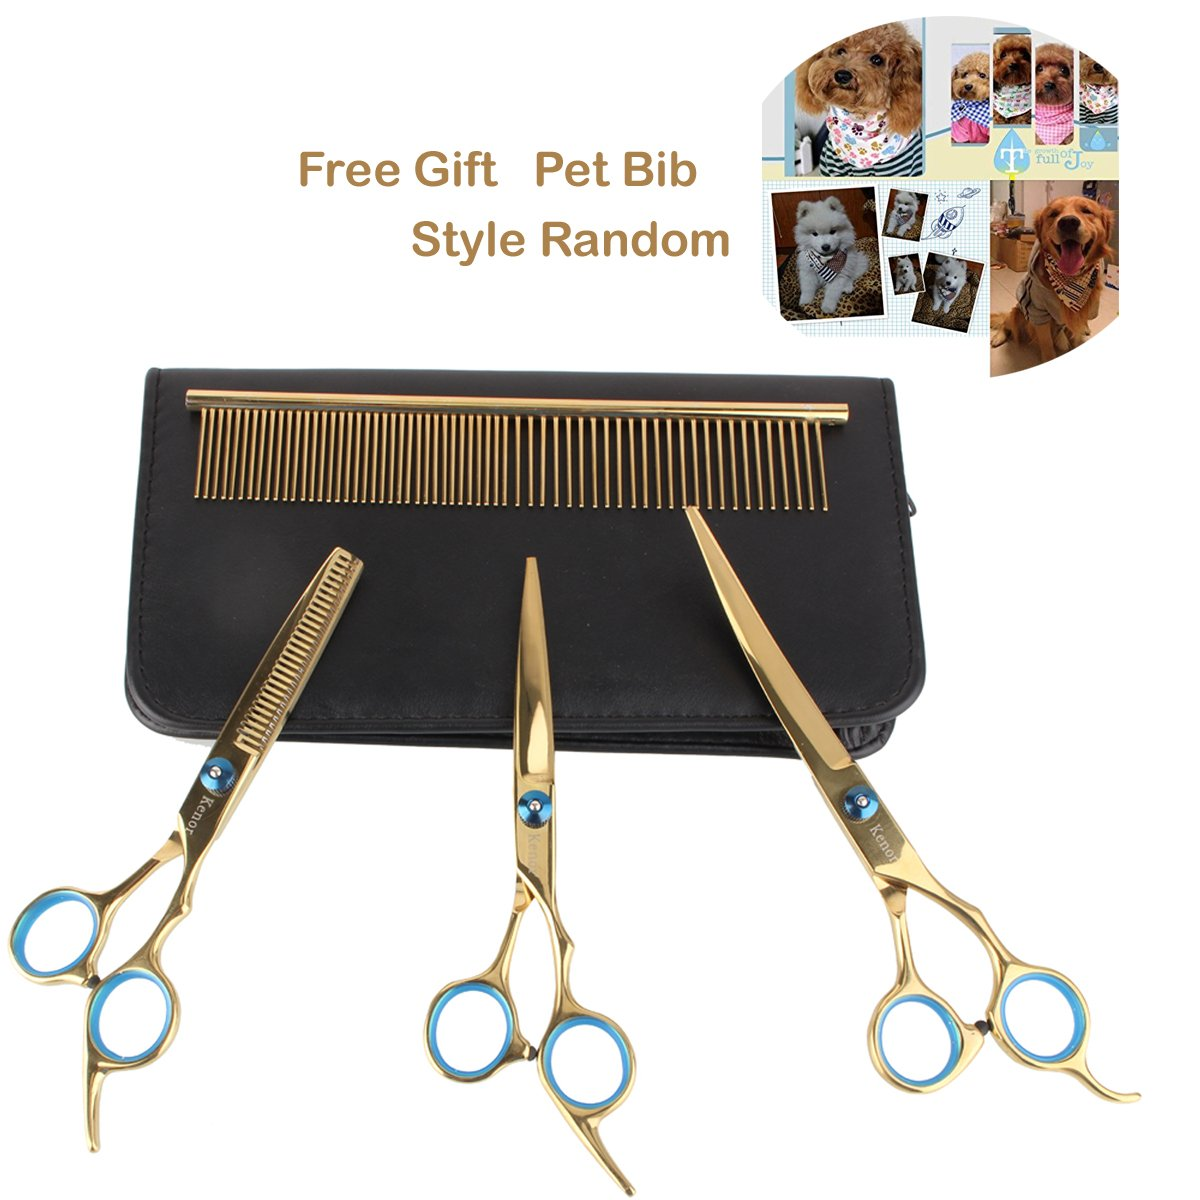 [6-in-1]Dog Grooming, Kenor Stainless Steel Premium Curved Scissor Set Professional PET DOG Home Grooming Scissors Suit Cutting Curved Thinning Shear, with a Free Gift Pet Triangle